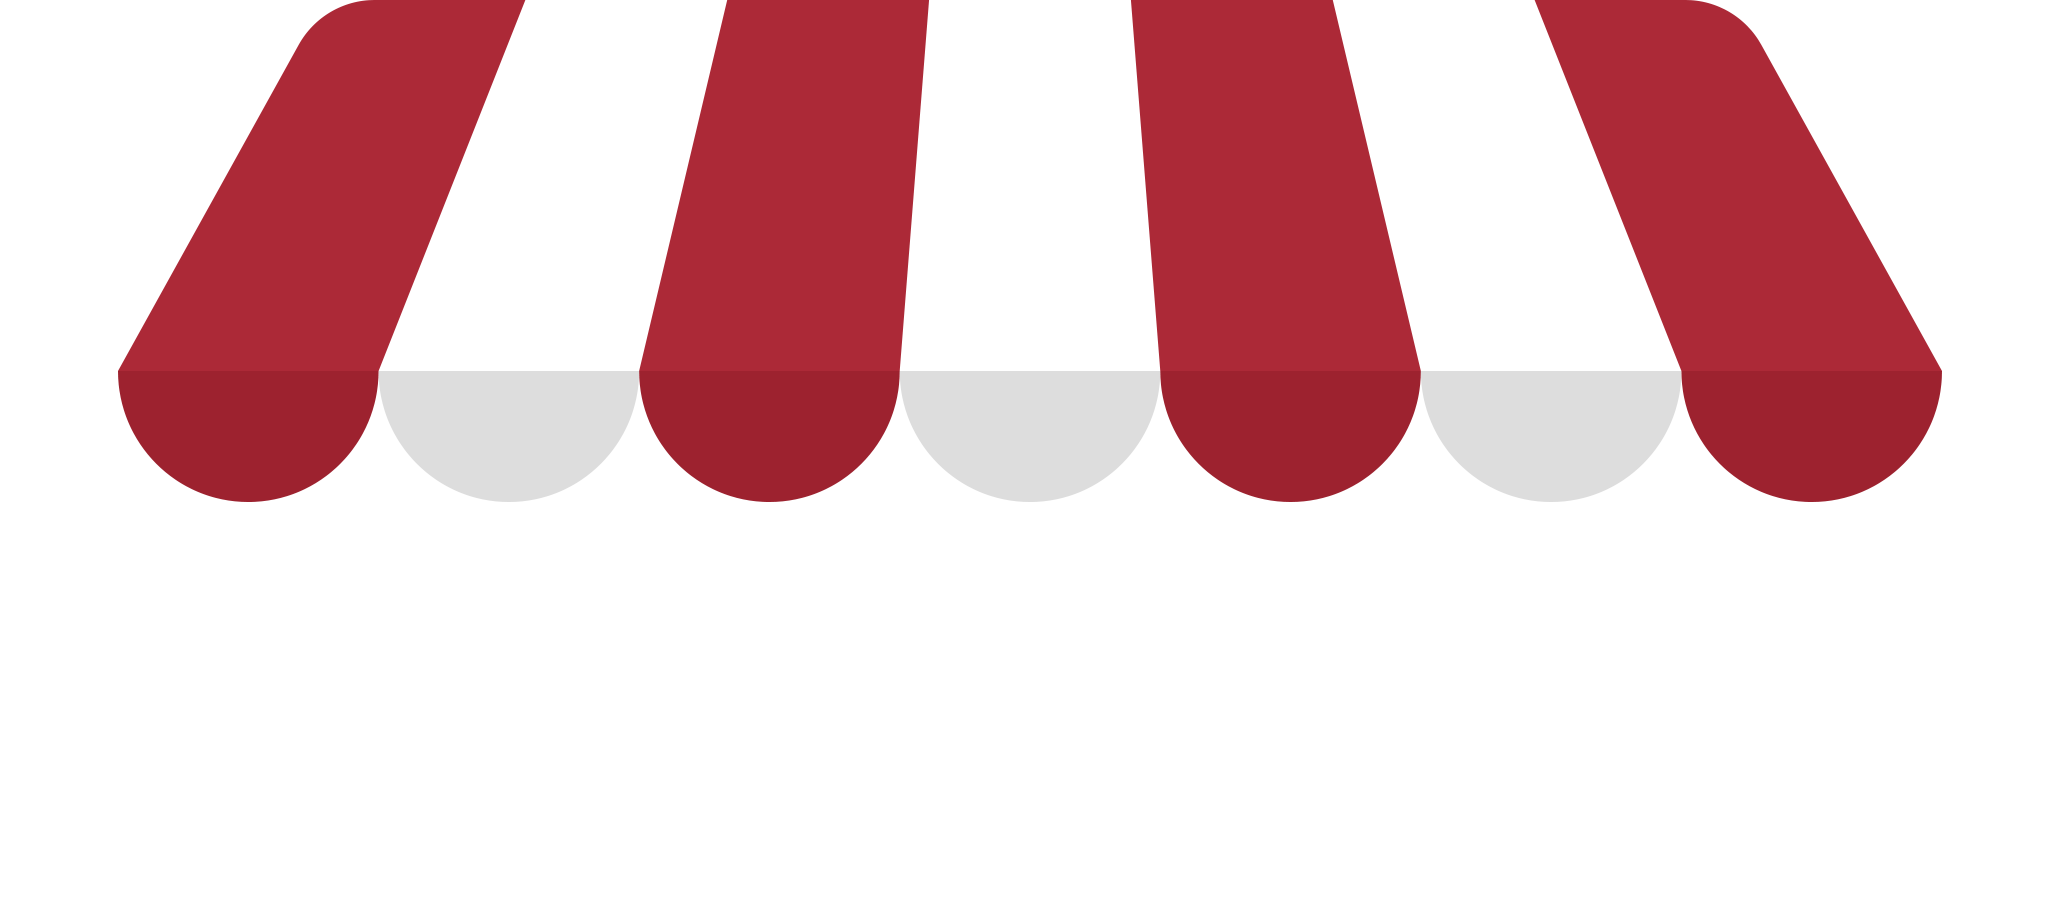 Small Businesses for LGBTQ Non-Discrimination